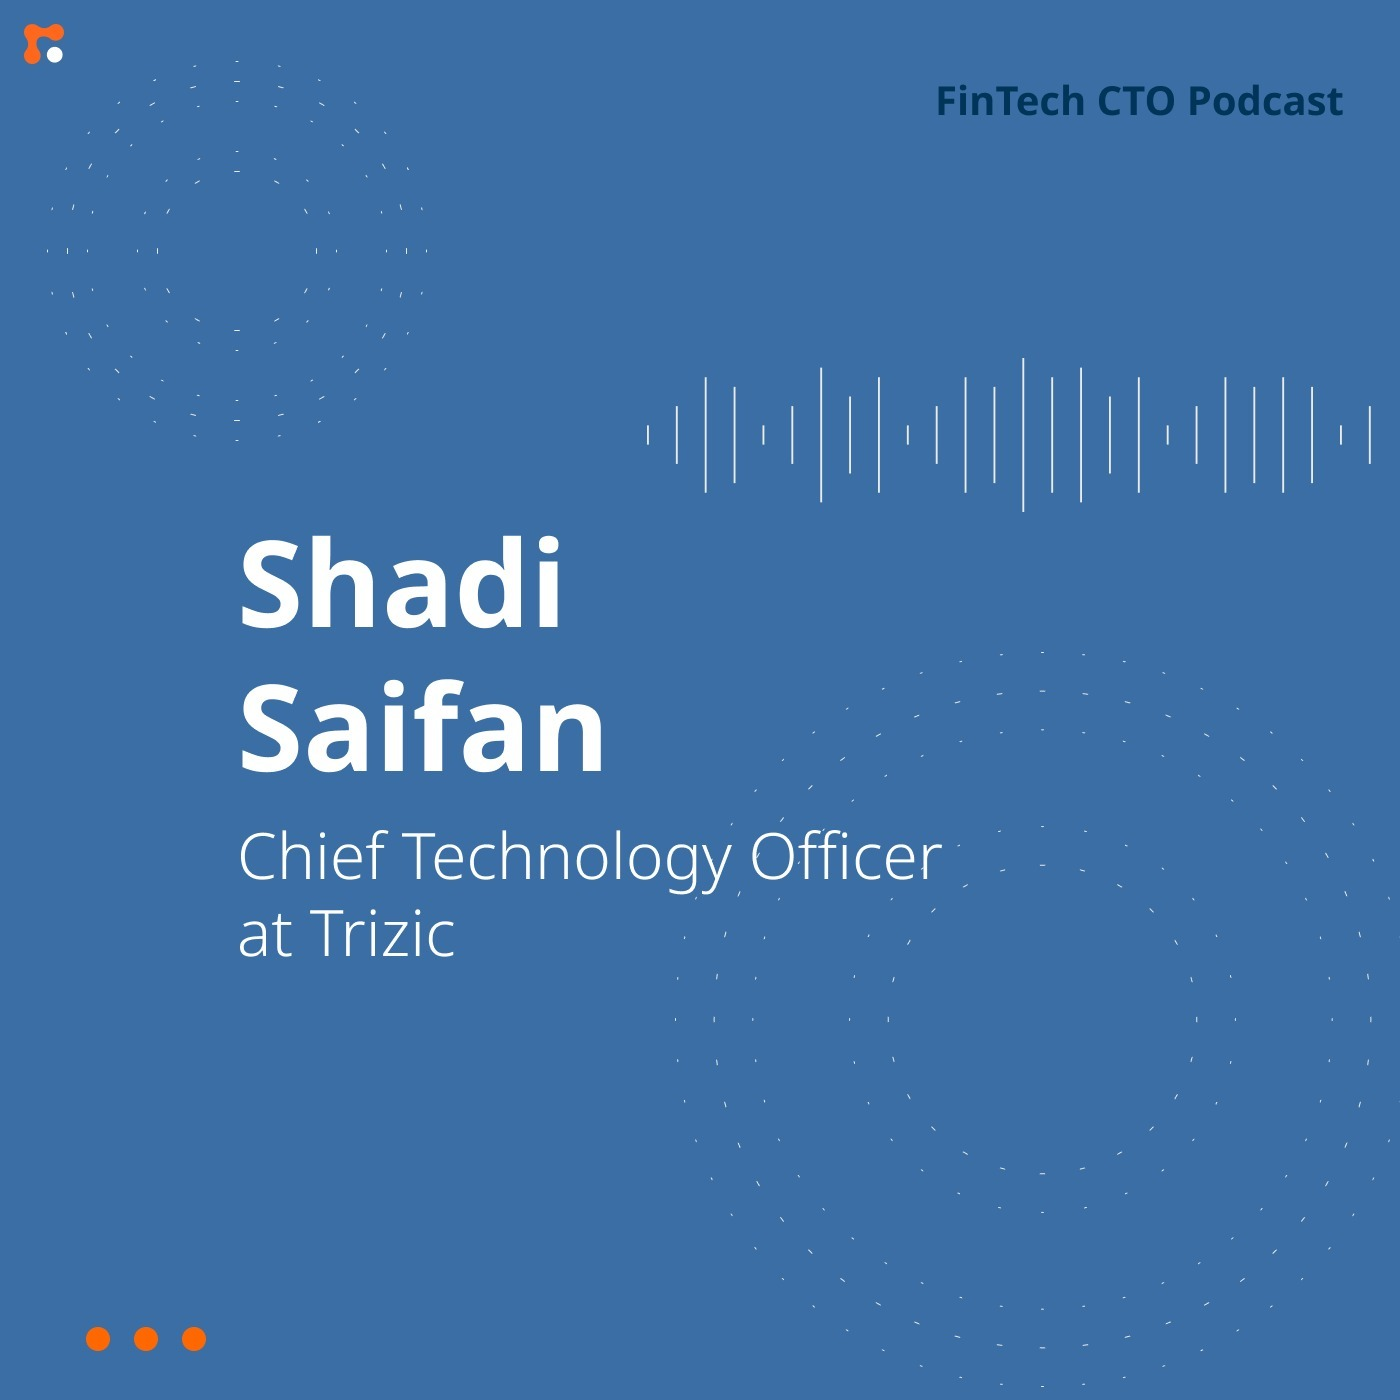 FinTech CTO Club - Shadi Saifan, CTO at Trizic